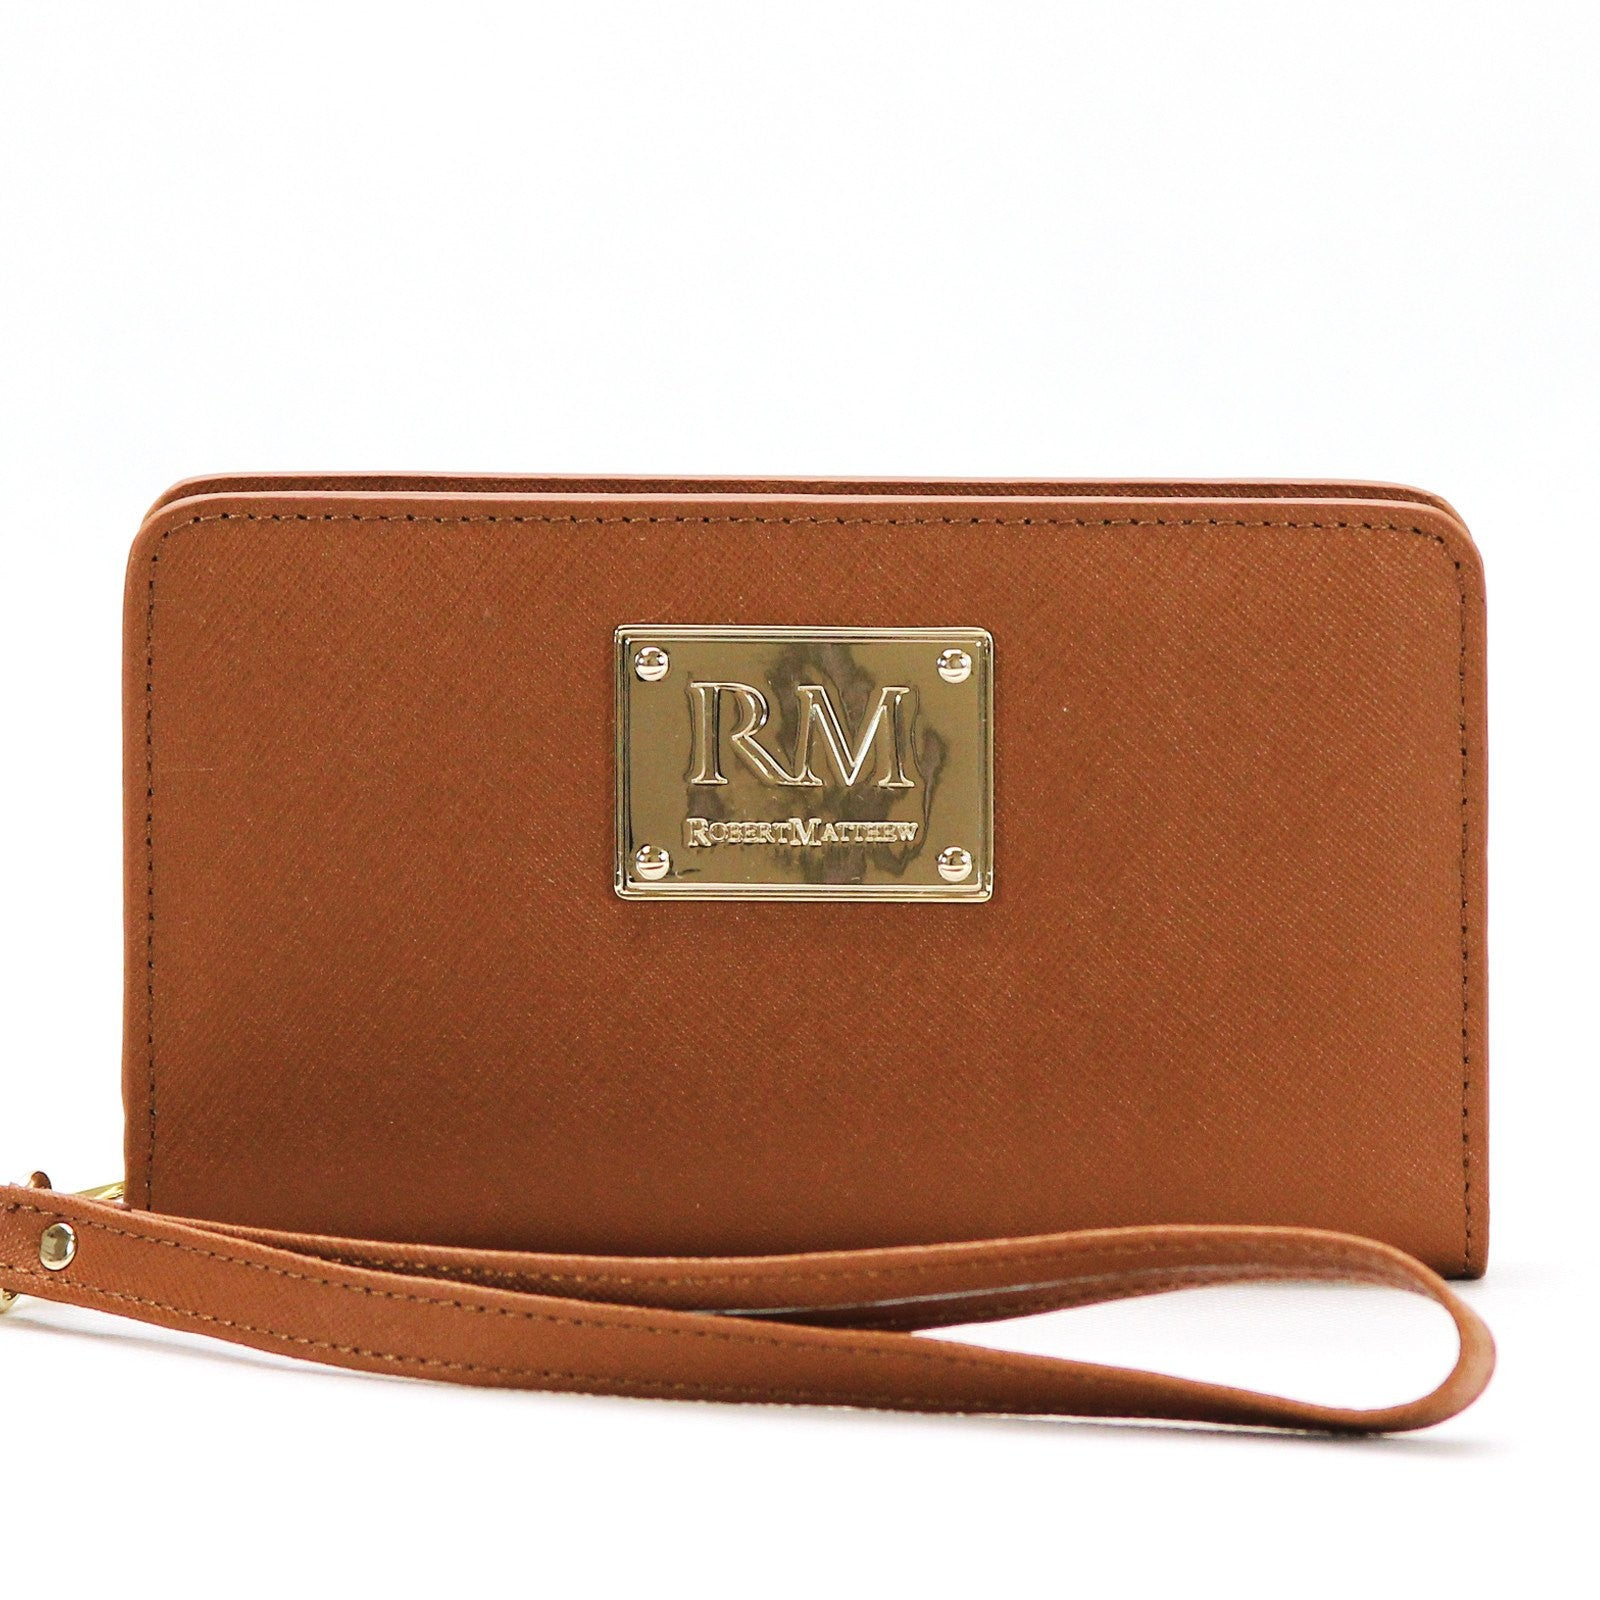 Robert Matthew Aria 24 K Gold Leather Wallet...